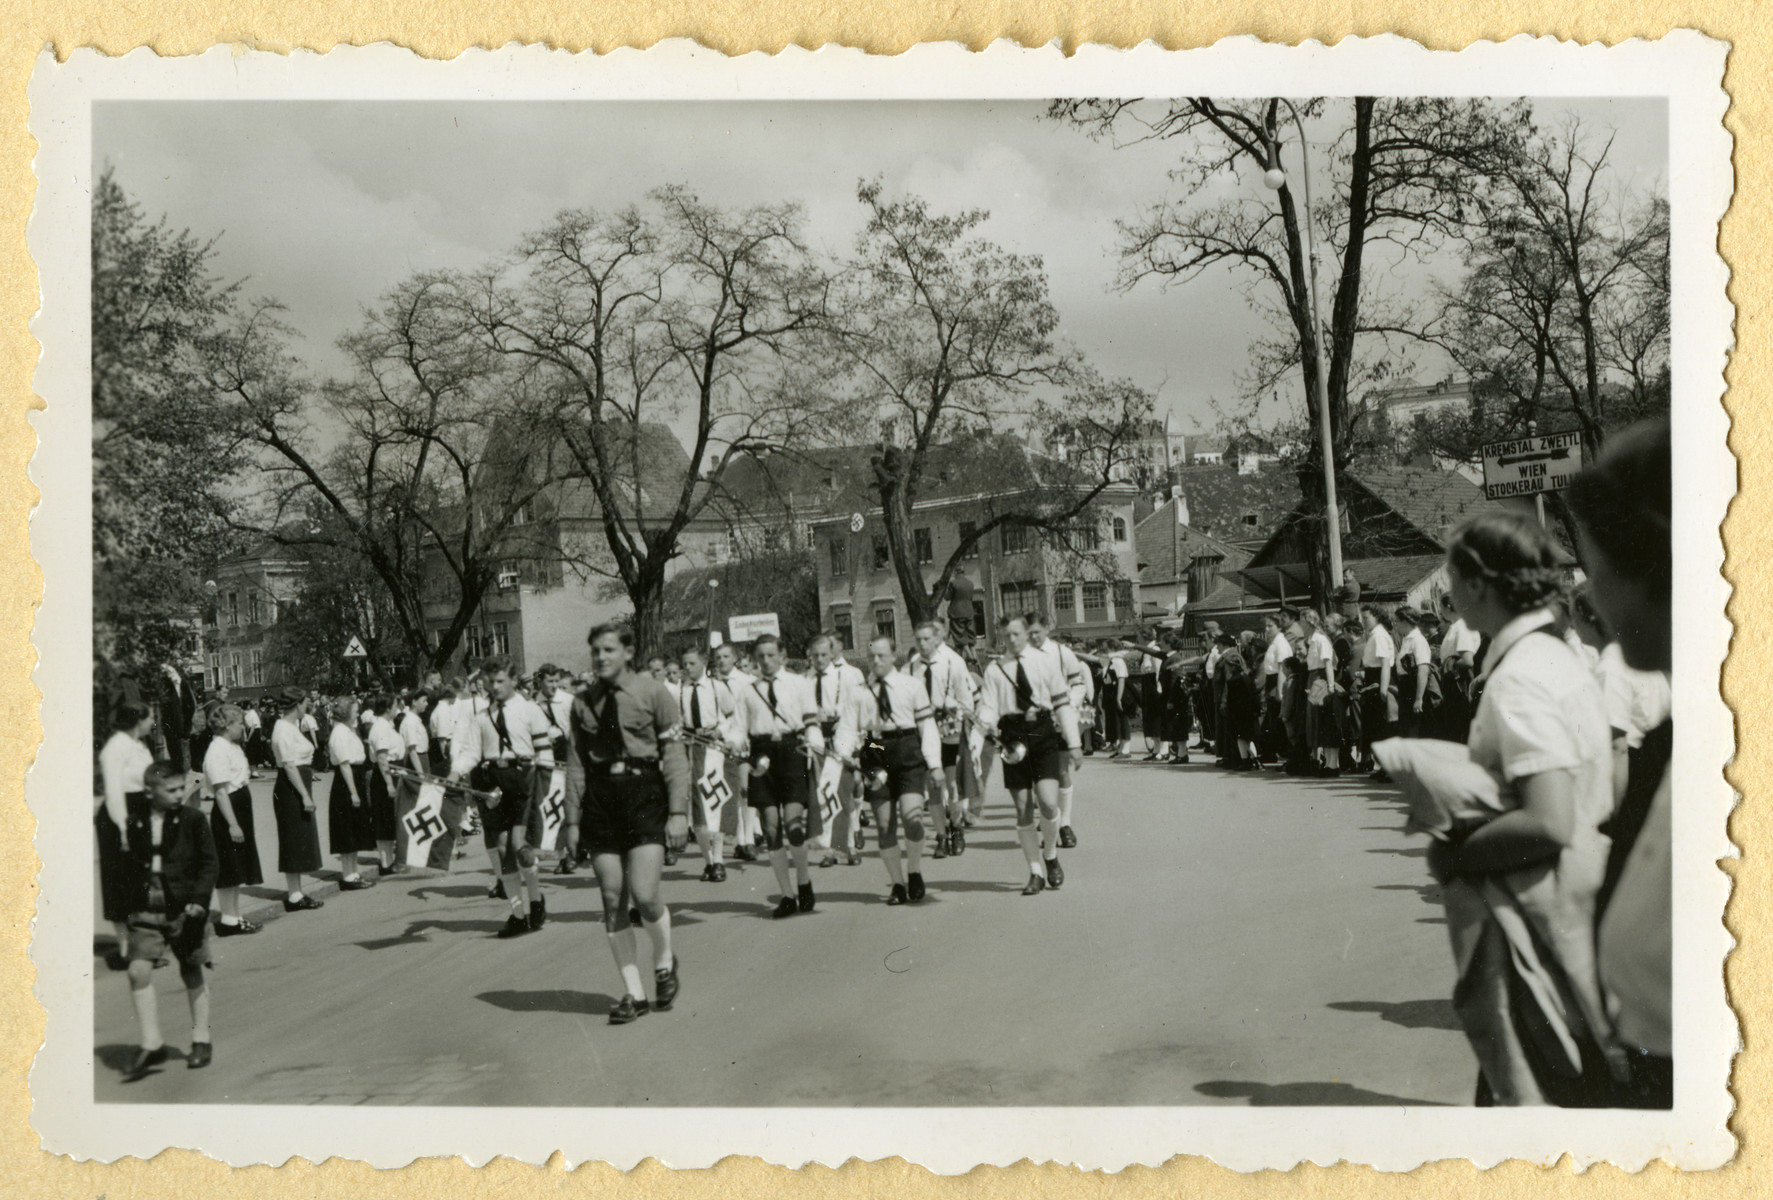 Hitler Youth march through an unidentified German city while members of the League of Geman Girls look on.